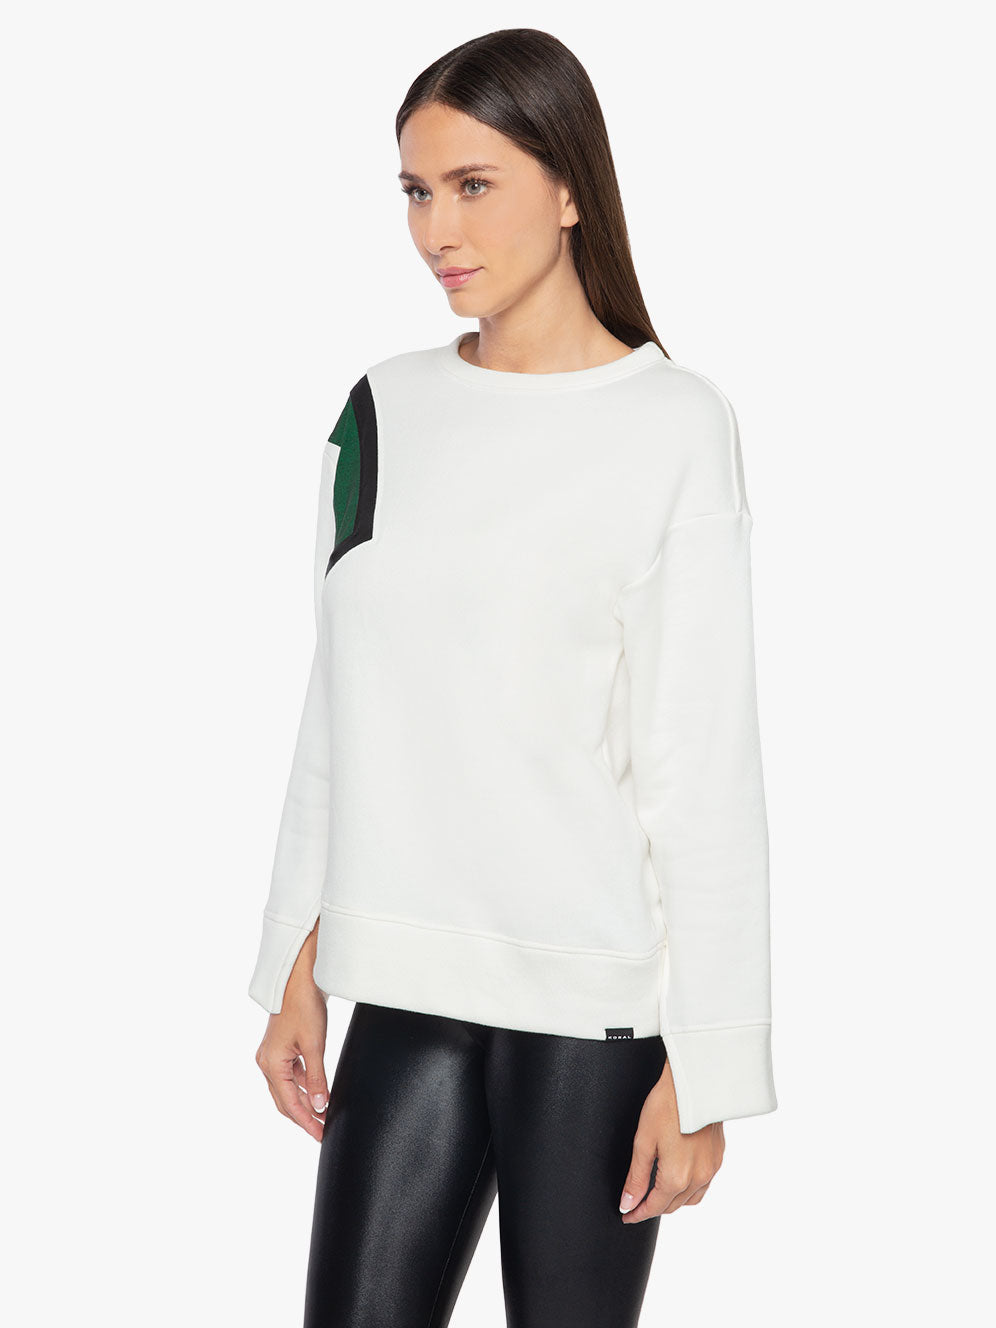 Saultry Matte Sweatshirt - White/Dark Green/Black